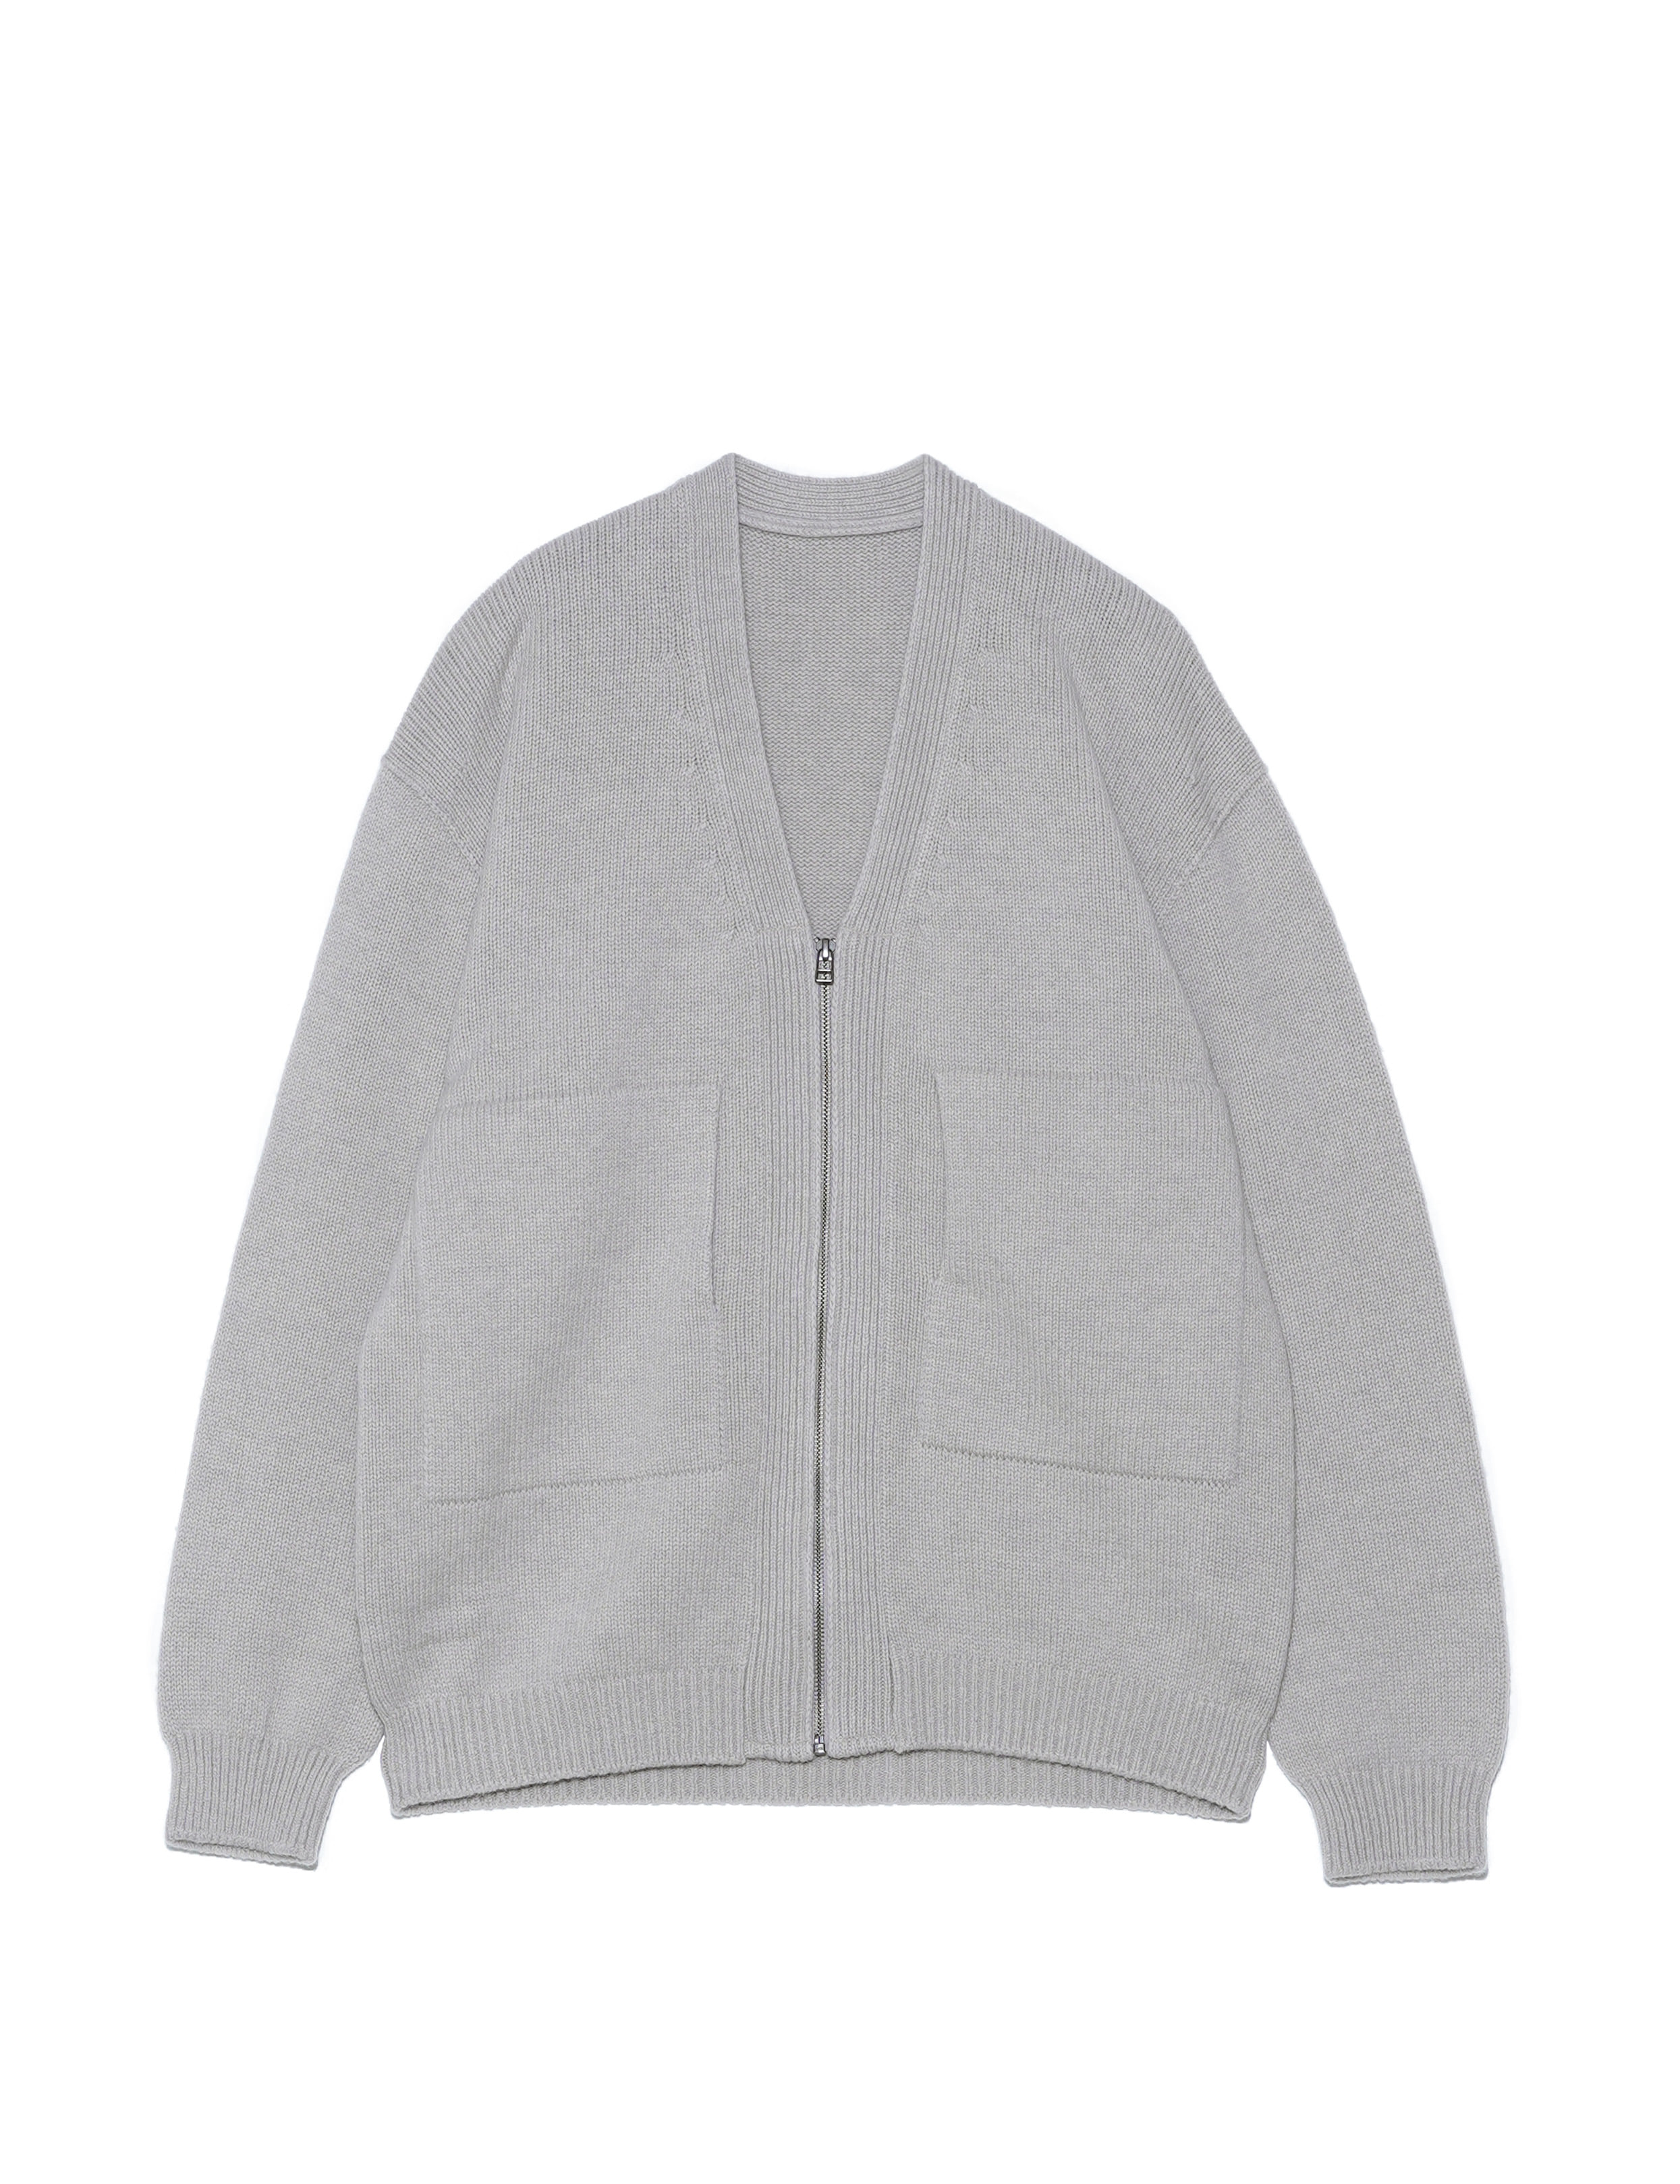 WHOLEGARMENT ZIP CARDIGAN (BEIGE)